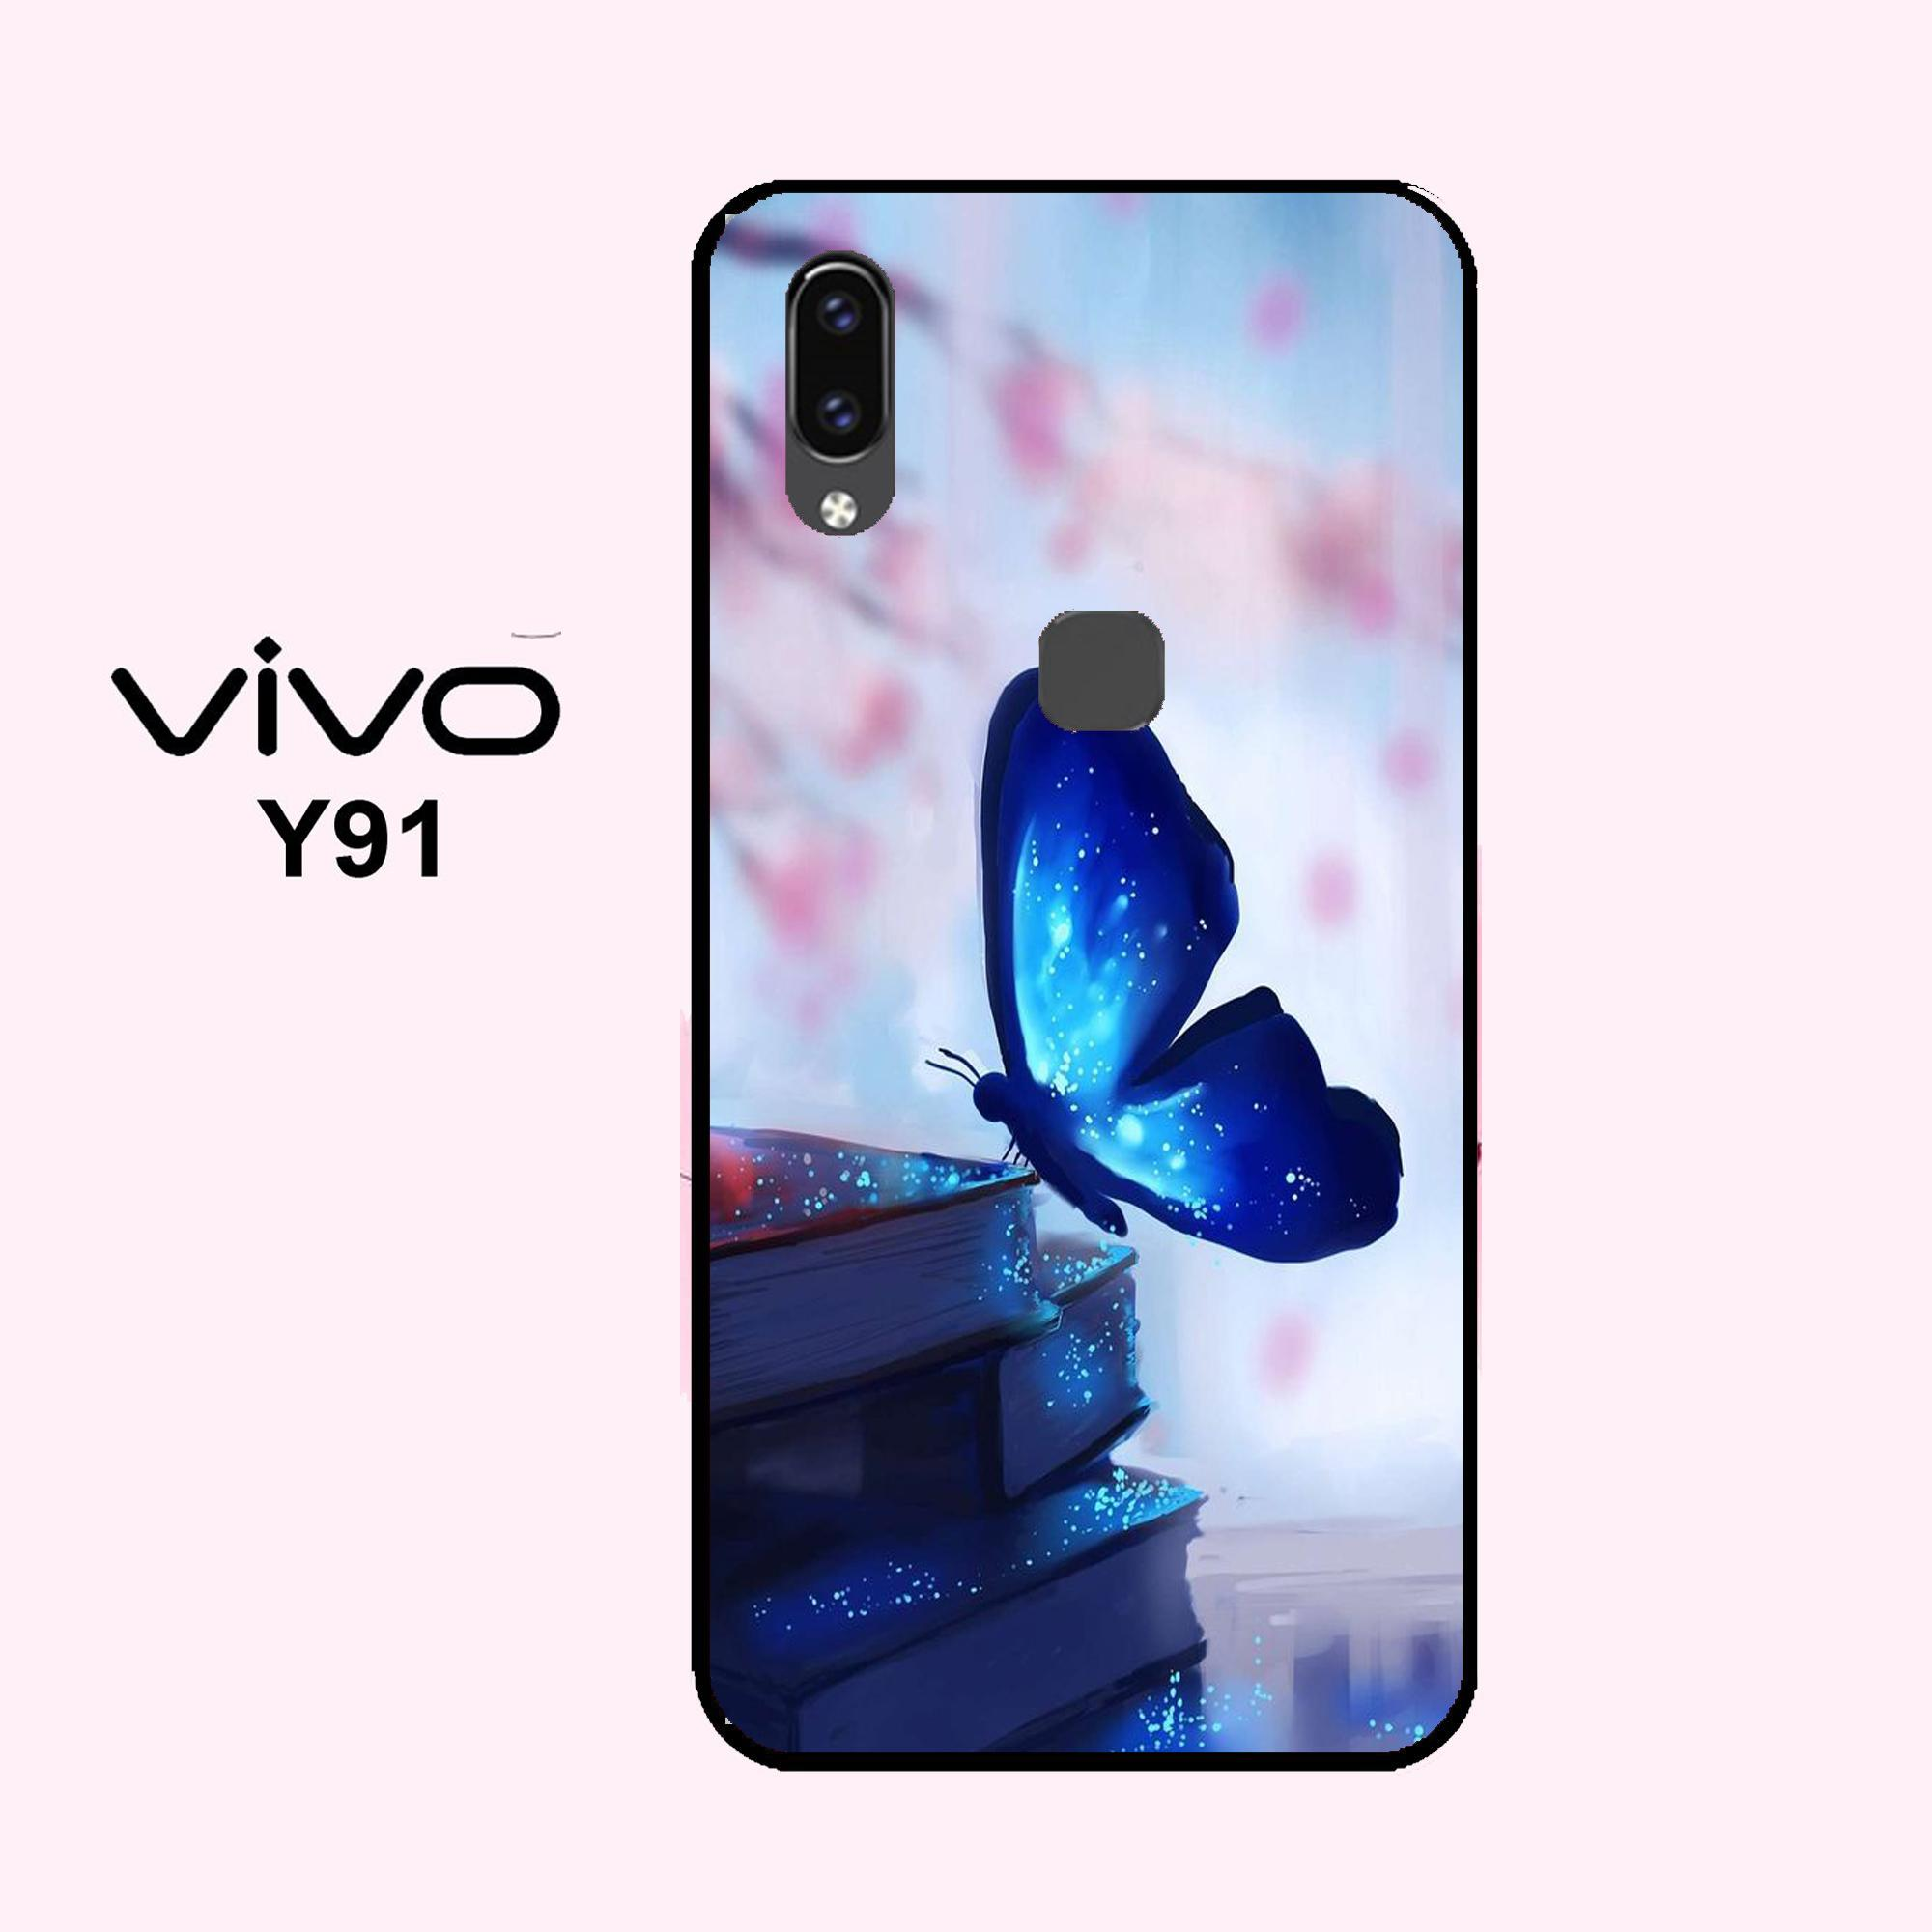 You can also compare camera, performance and reviews online to decide which device is best to. Daftar Harga Hp Oppo Vivo Y91 Terbaru Juni 2020 - Vivo Drivers